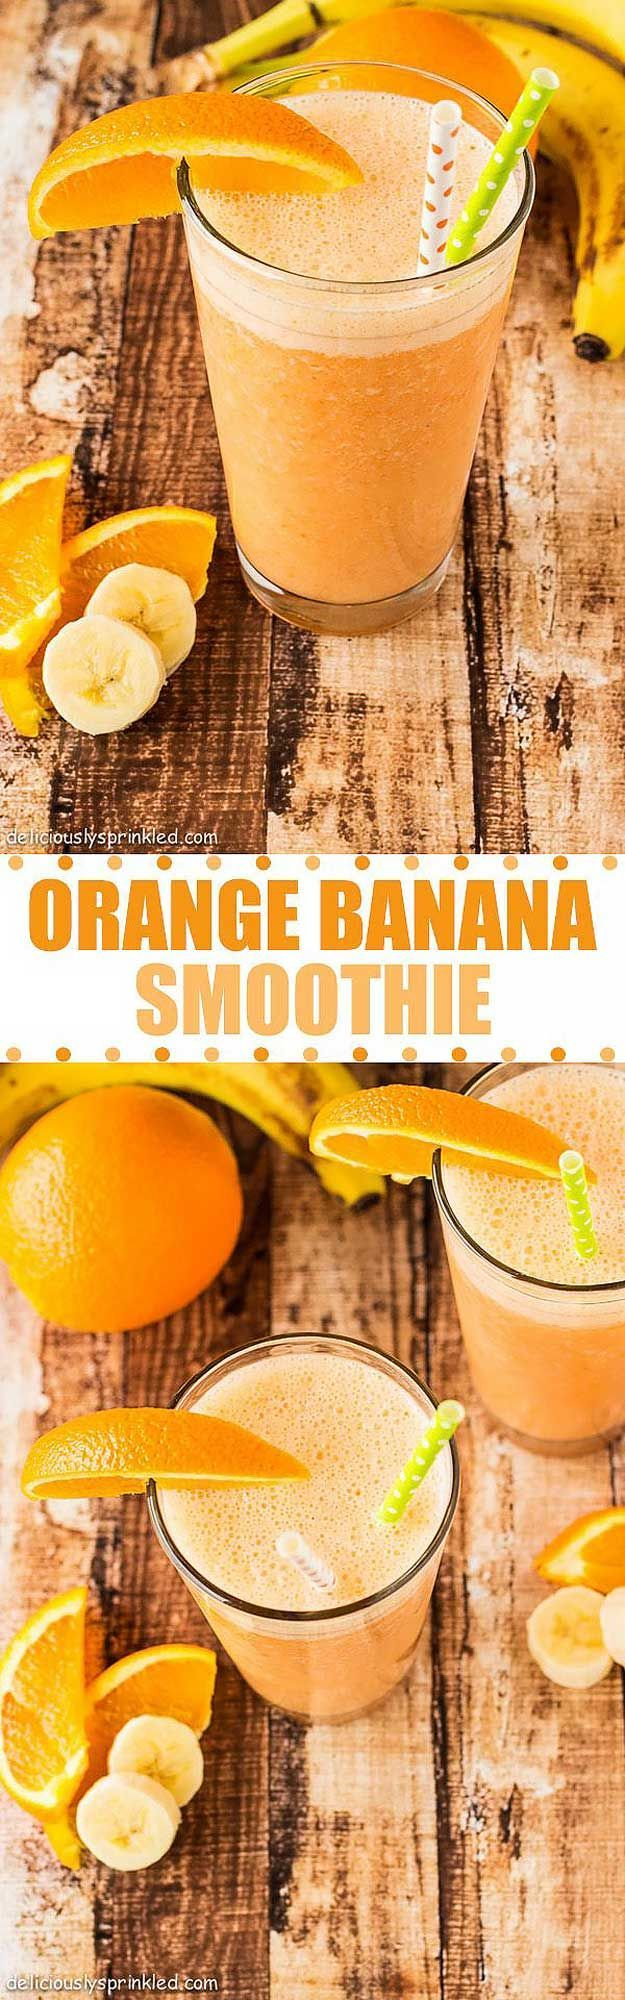 Healthy smoothie recipes and easy ideas perfect for breakfast, energy. Low calorie and high protein recipes for weightloss and to lose weight. Simple homemade recipe ideas that kids love.  |  Orange Banana Smoothie  |  http://diyjoy.com/healthy-smoothie-recipes